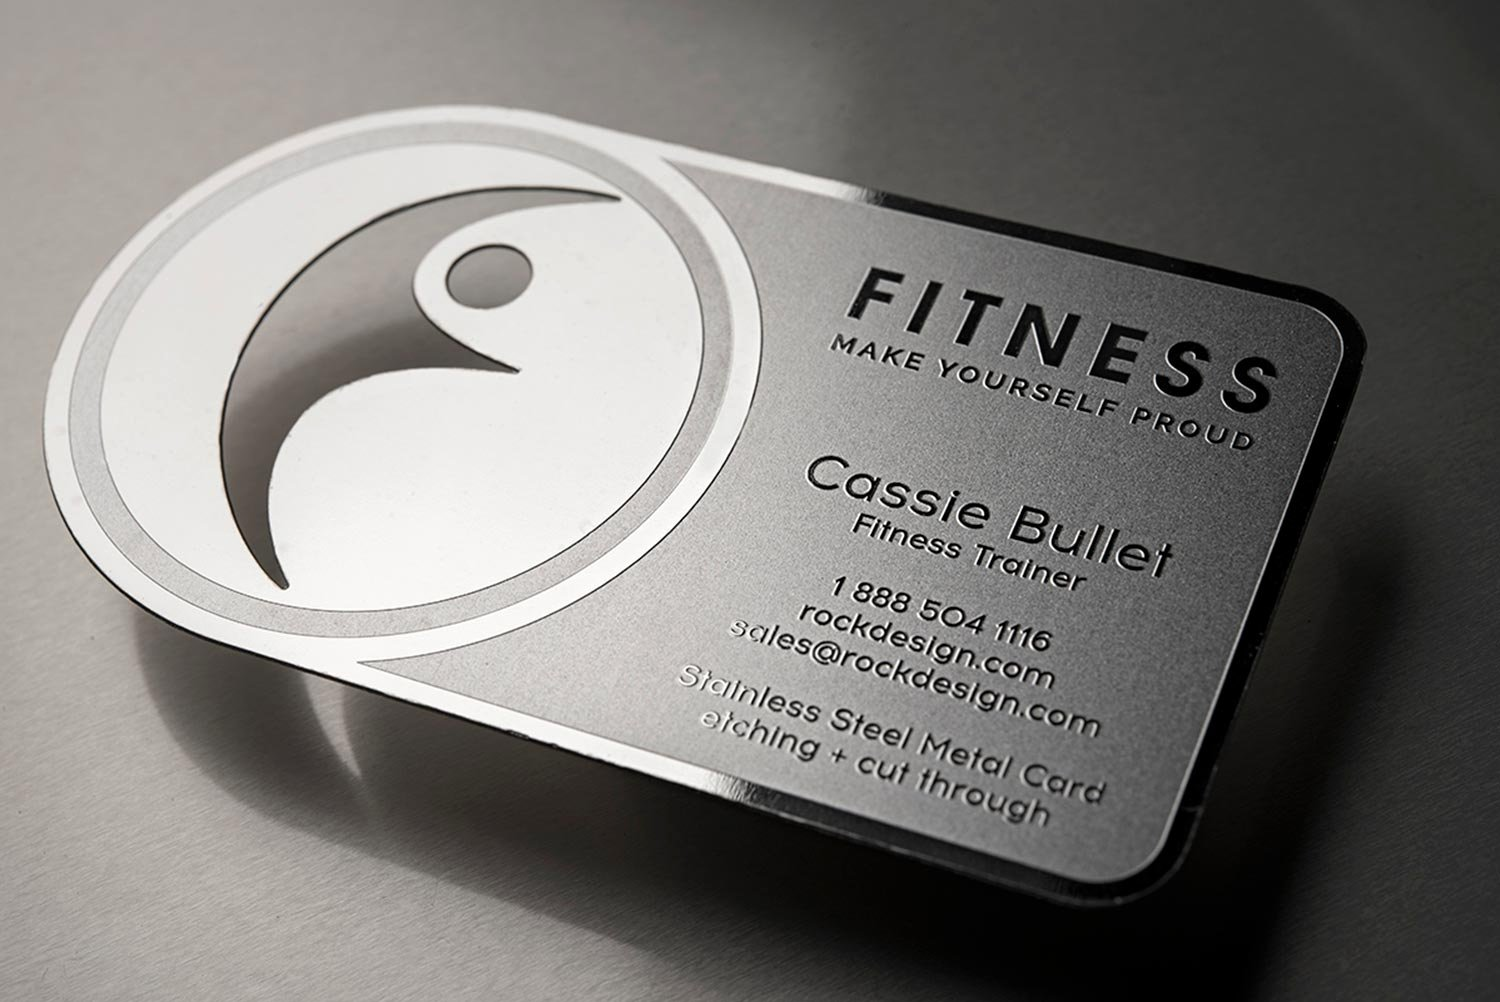 Personal Trainer Business Cards Unique Free Innovative Stainless Steel Personal Trainer Business Card Template Fitness